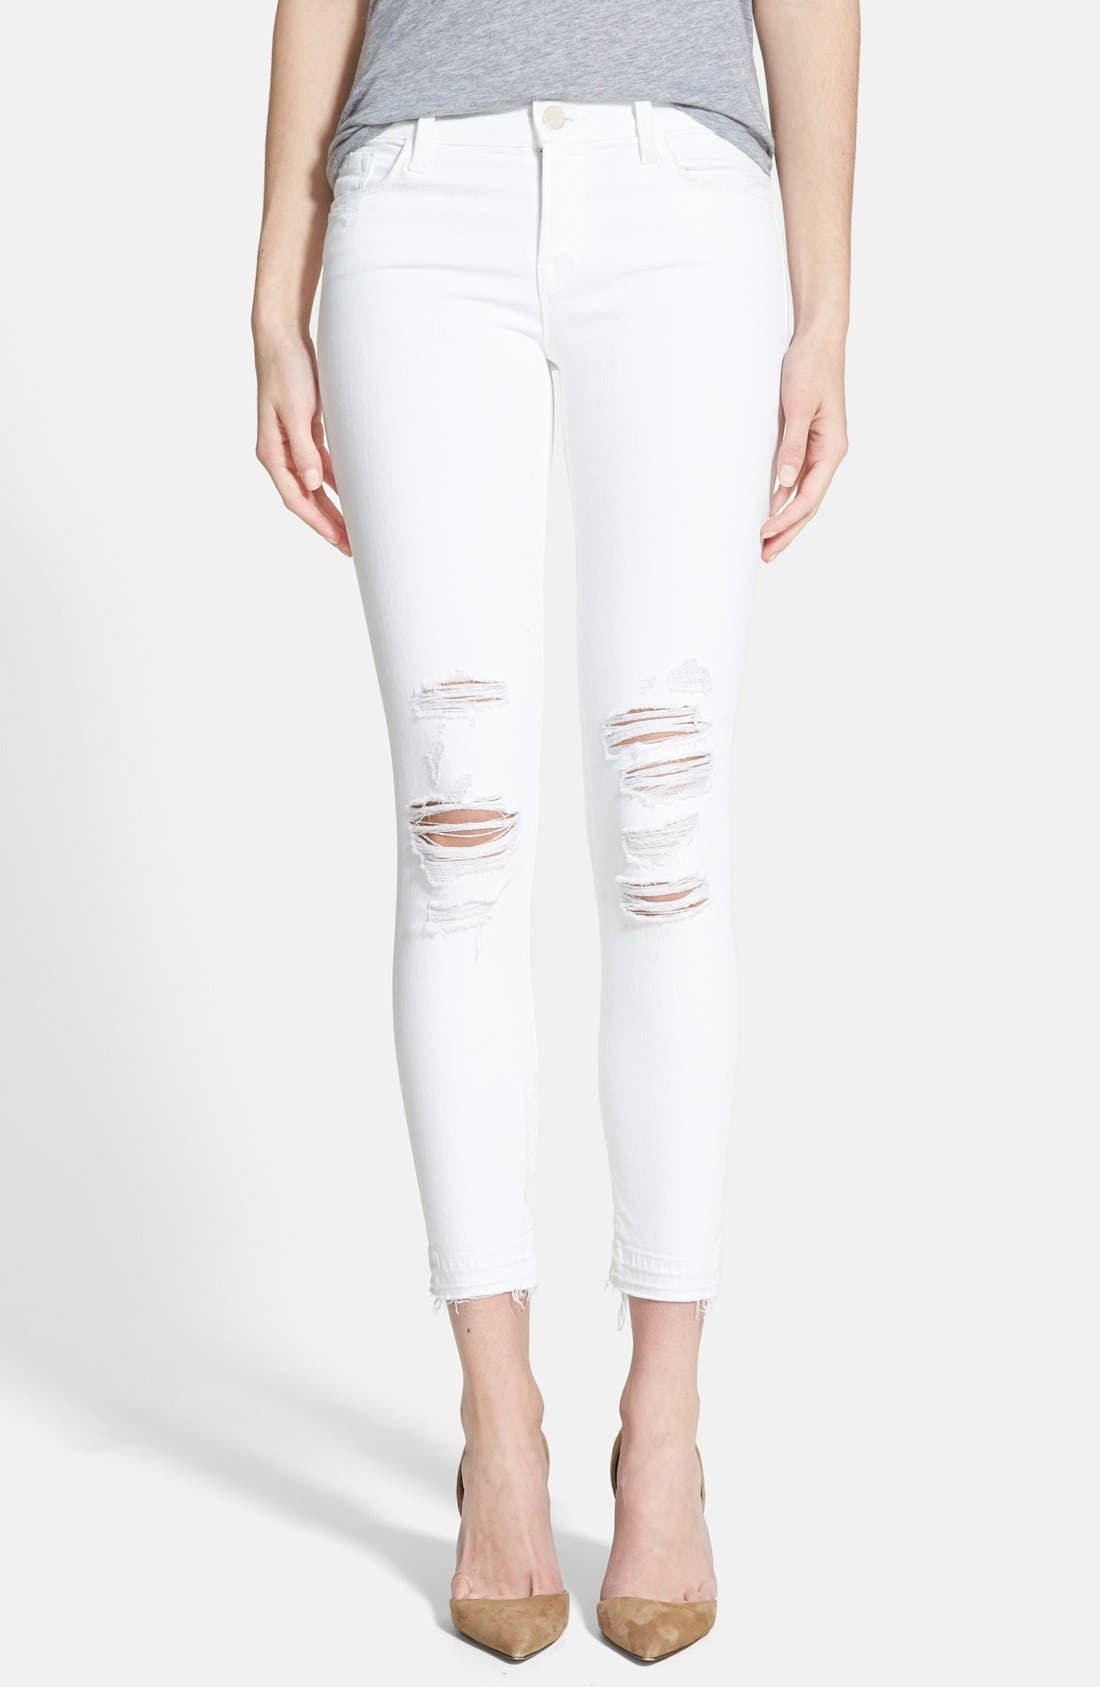 9326 Low Rise Crop Skinny Jeans,                             Main thumbnail 1, color,                             DEMENTED WHITE DESTRUCTED